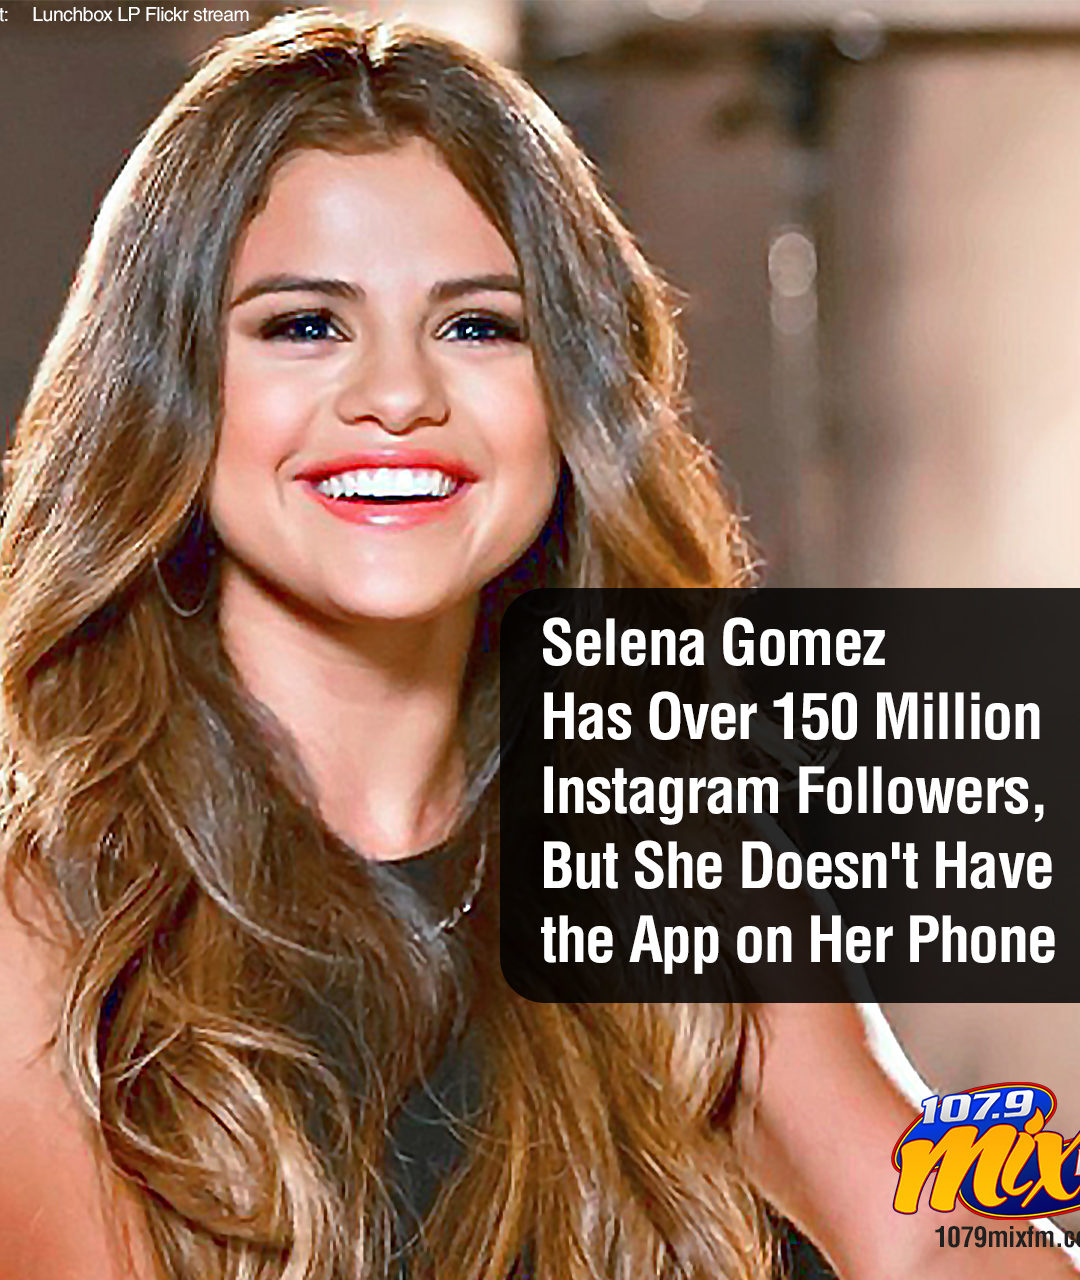 Selena Gomez Has Over 150 Million Instagram Followers, But She Doesn't Have the App on Her Phone